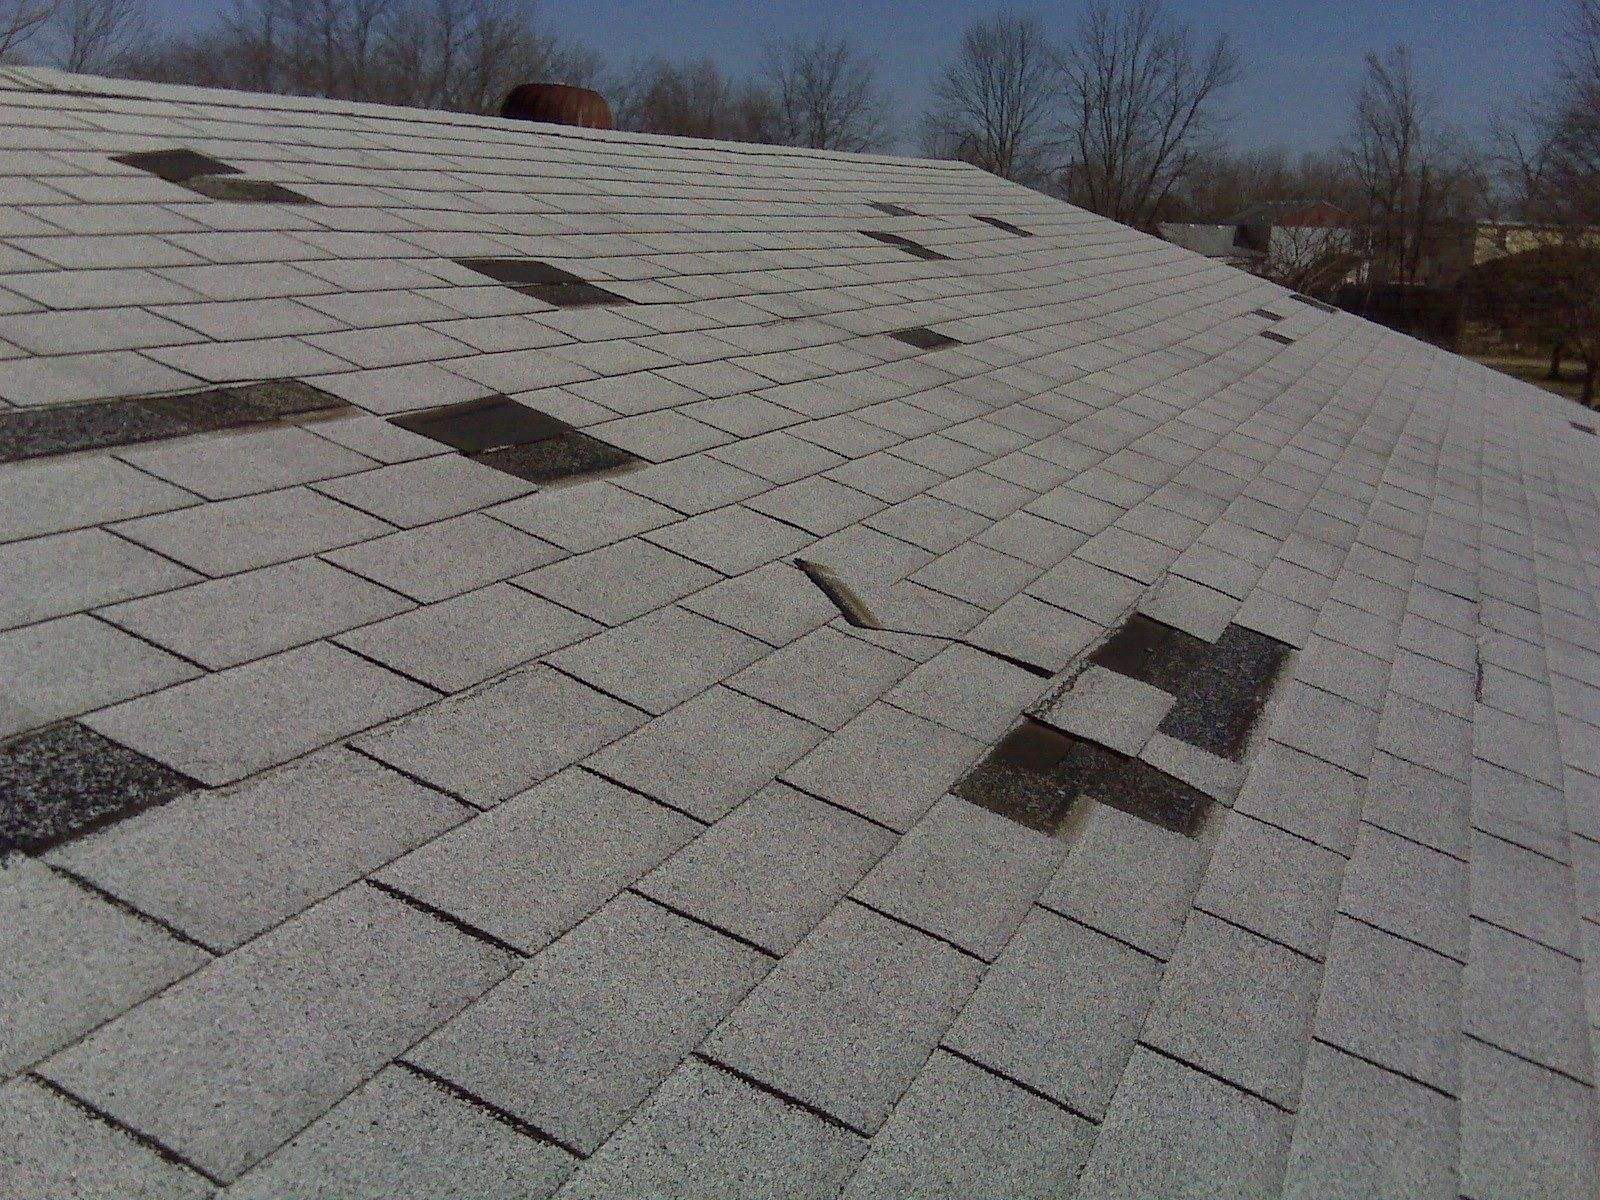 A Collapsed Roof Can Mean Big Problems For The Rest Of Your Home